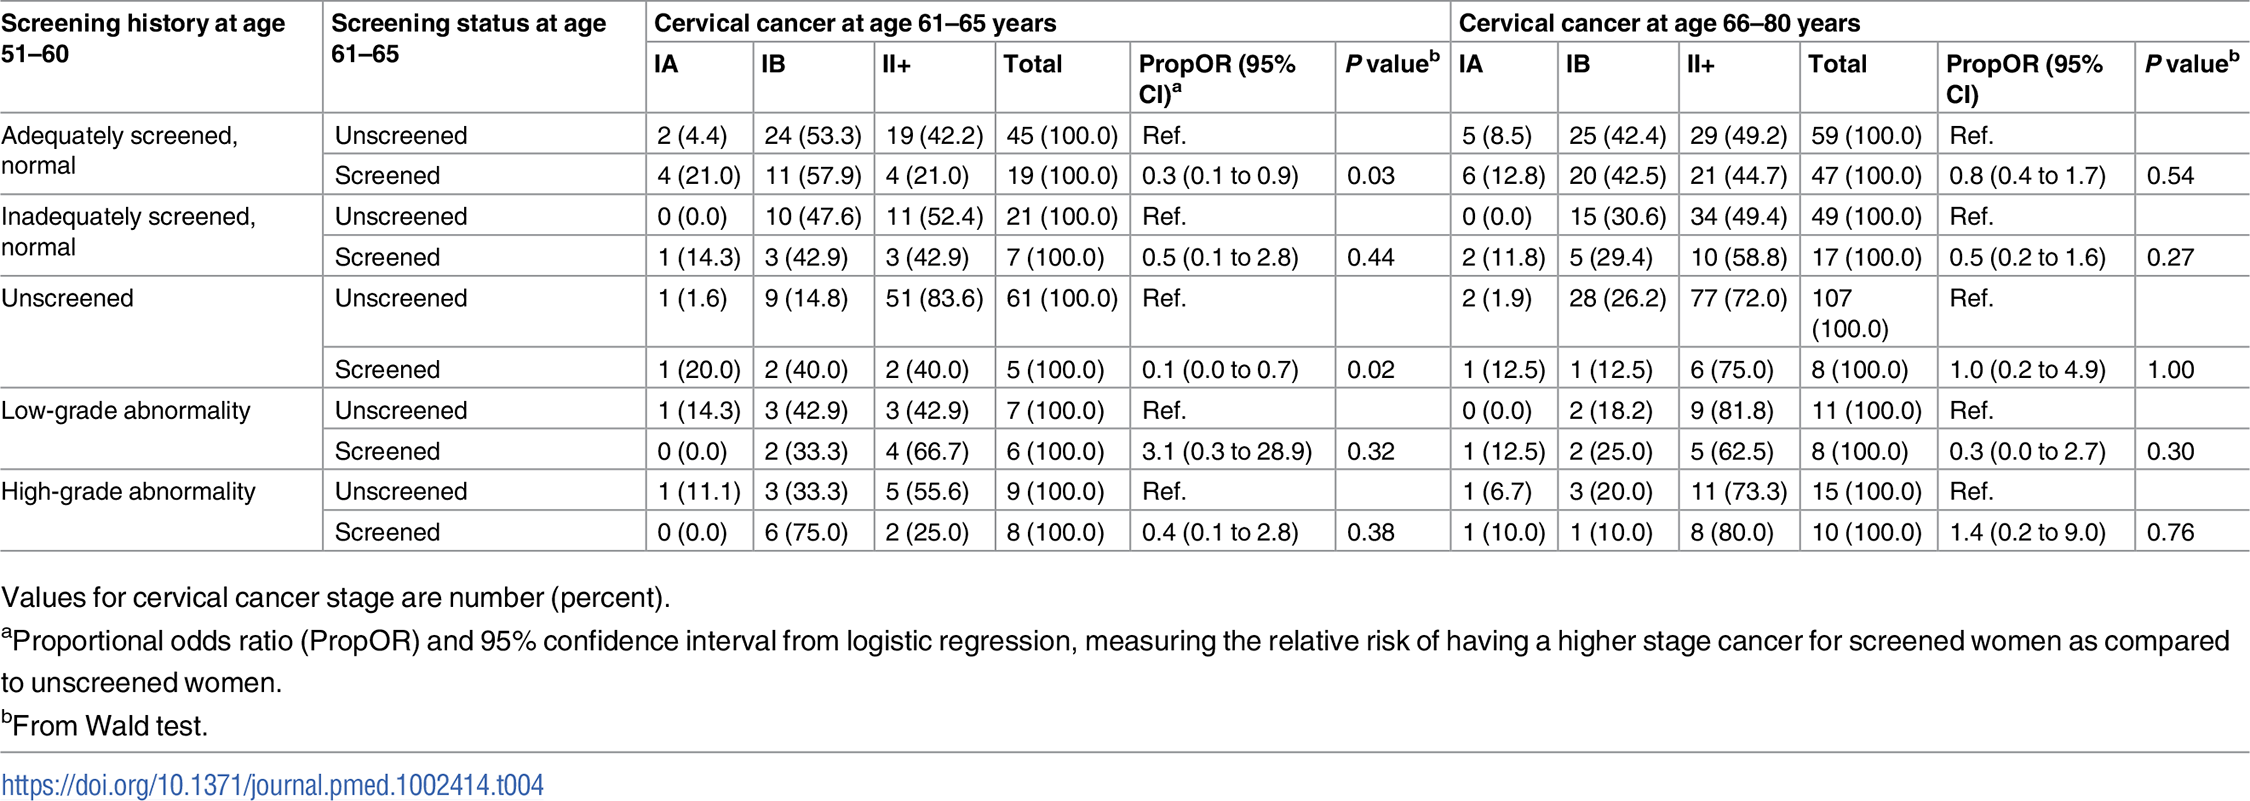 Stage distribution of cervical cancer at age 61–80 (diagnosed in 2002–2011) among women screened and unscreened at age 61–65, by screening history at age 51–60.